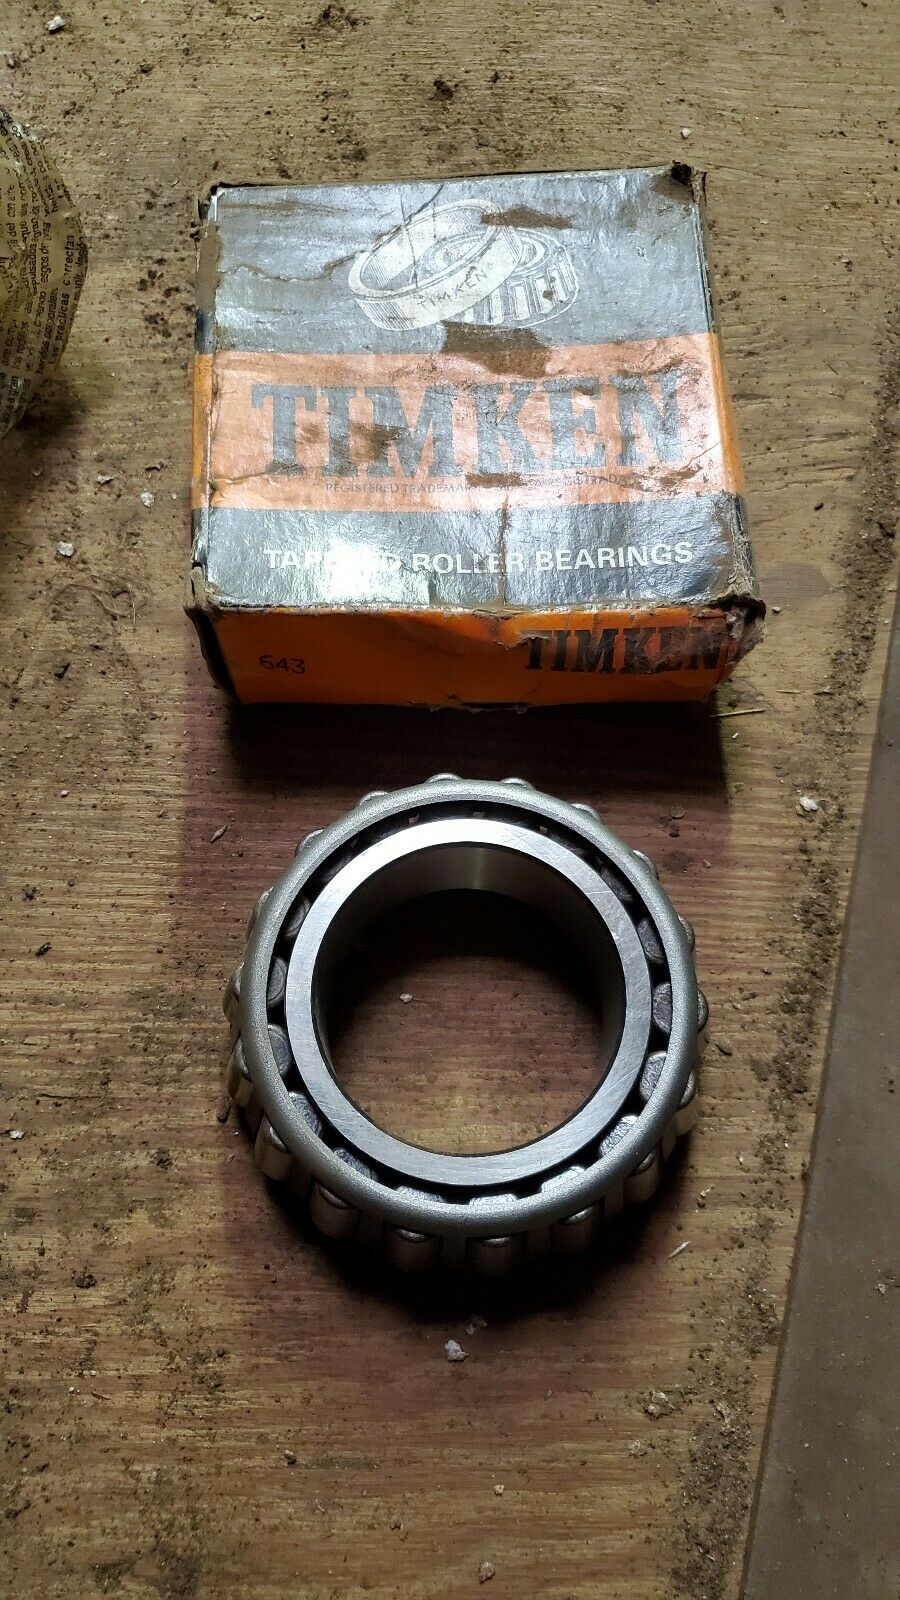 Timken 643 Tapered Cone and Rollers Bearing 3110-00-100-0663